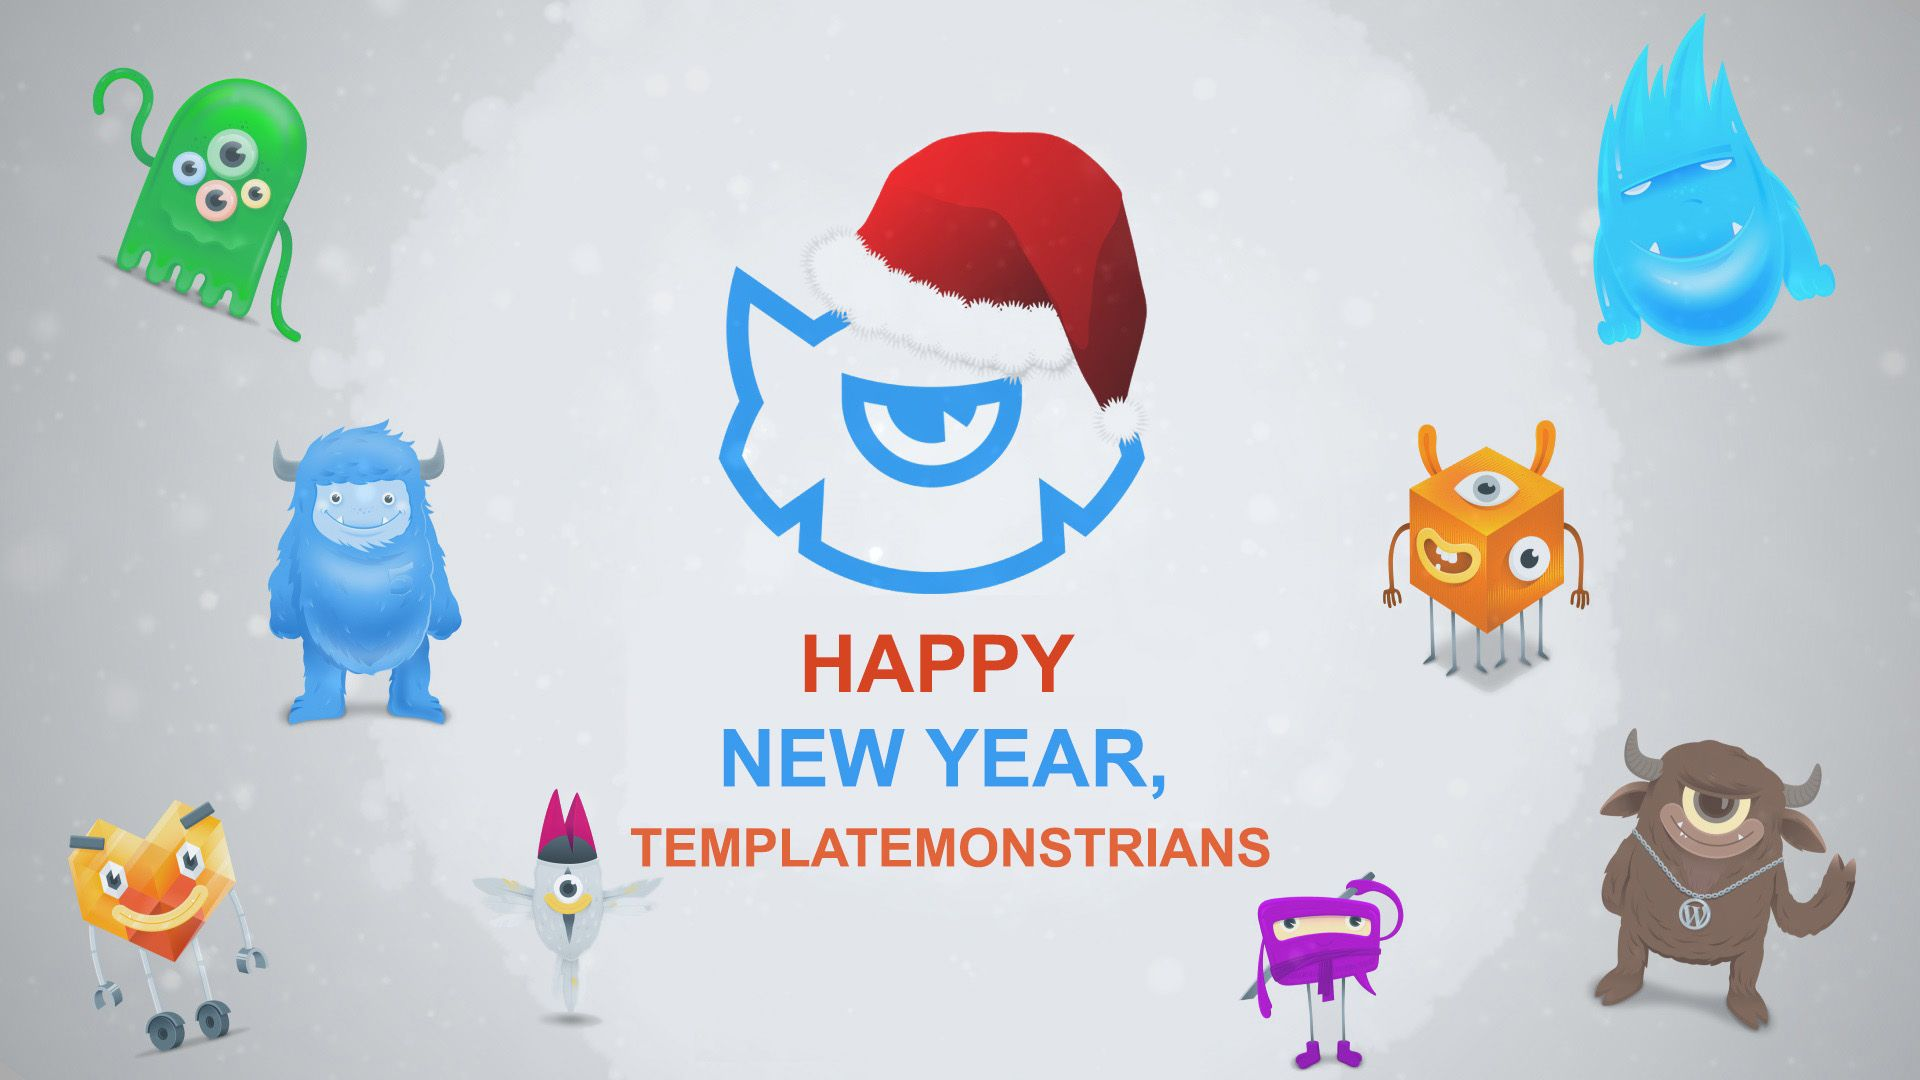 Wish you a happy and prosperous New Year!